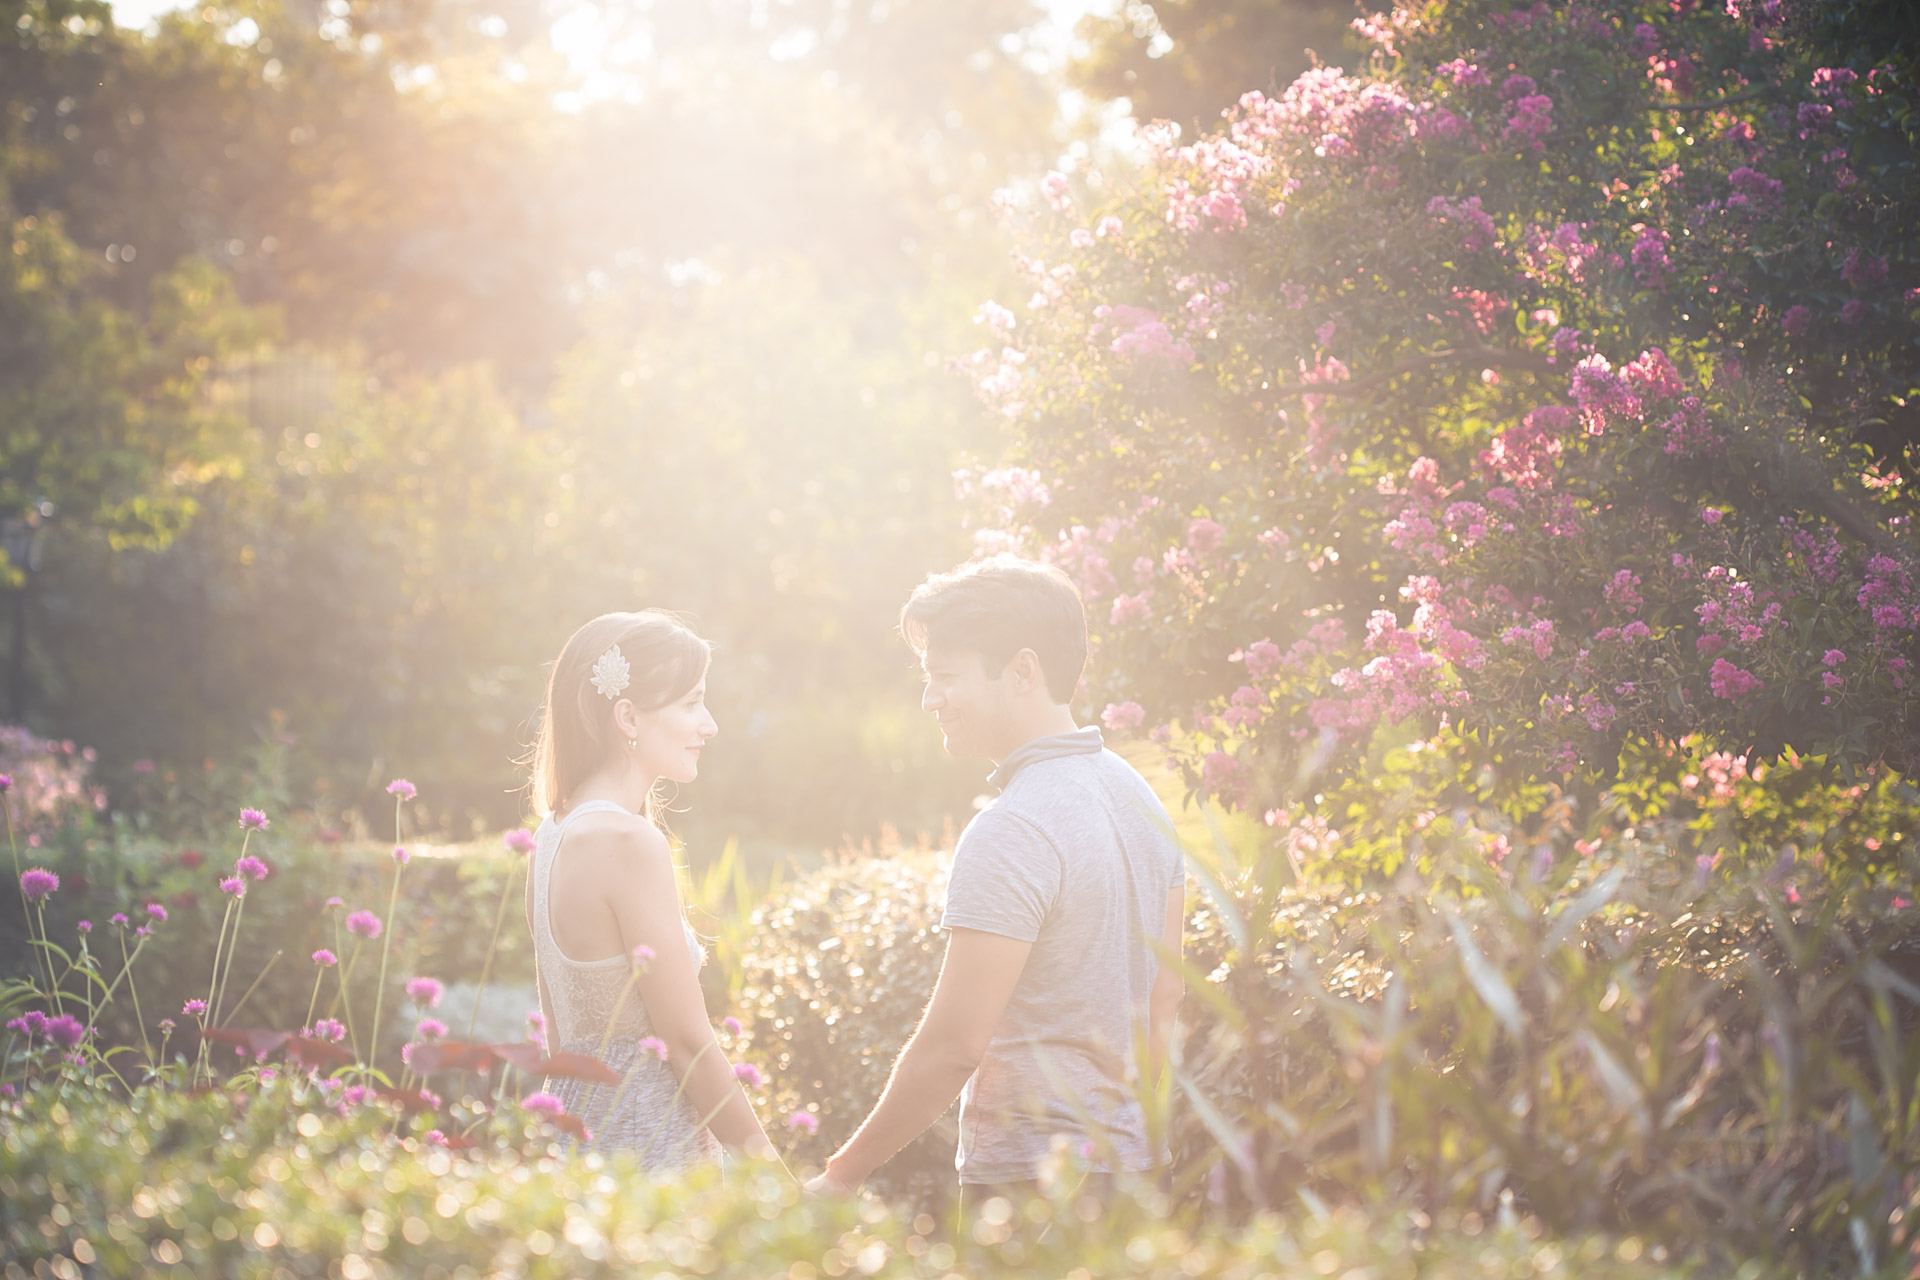 nyc - central park - engagement session - ethereal